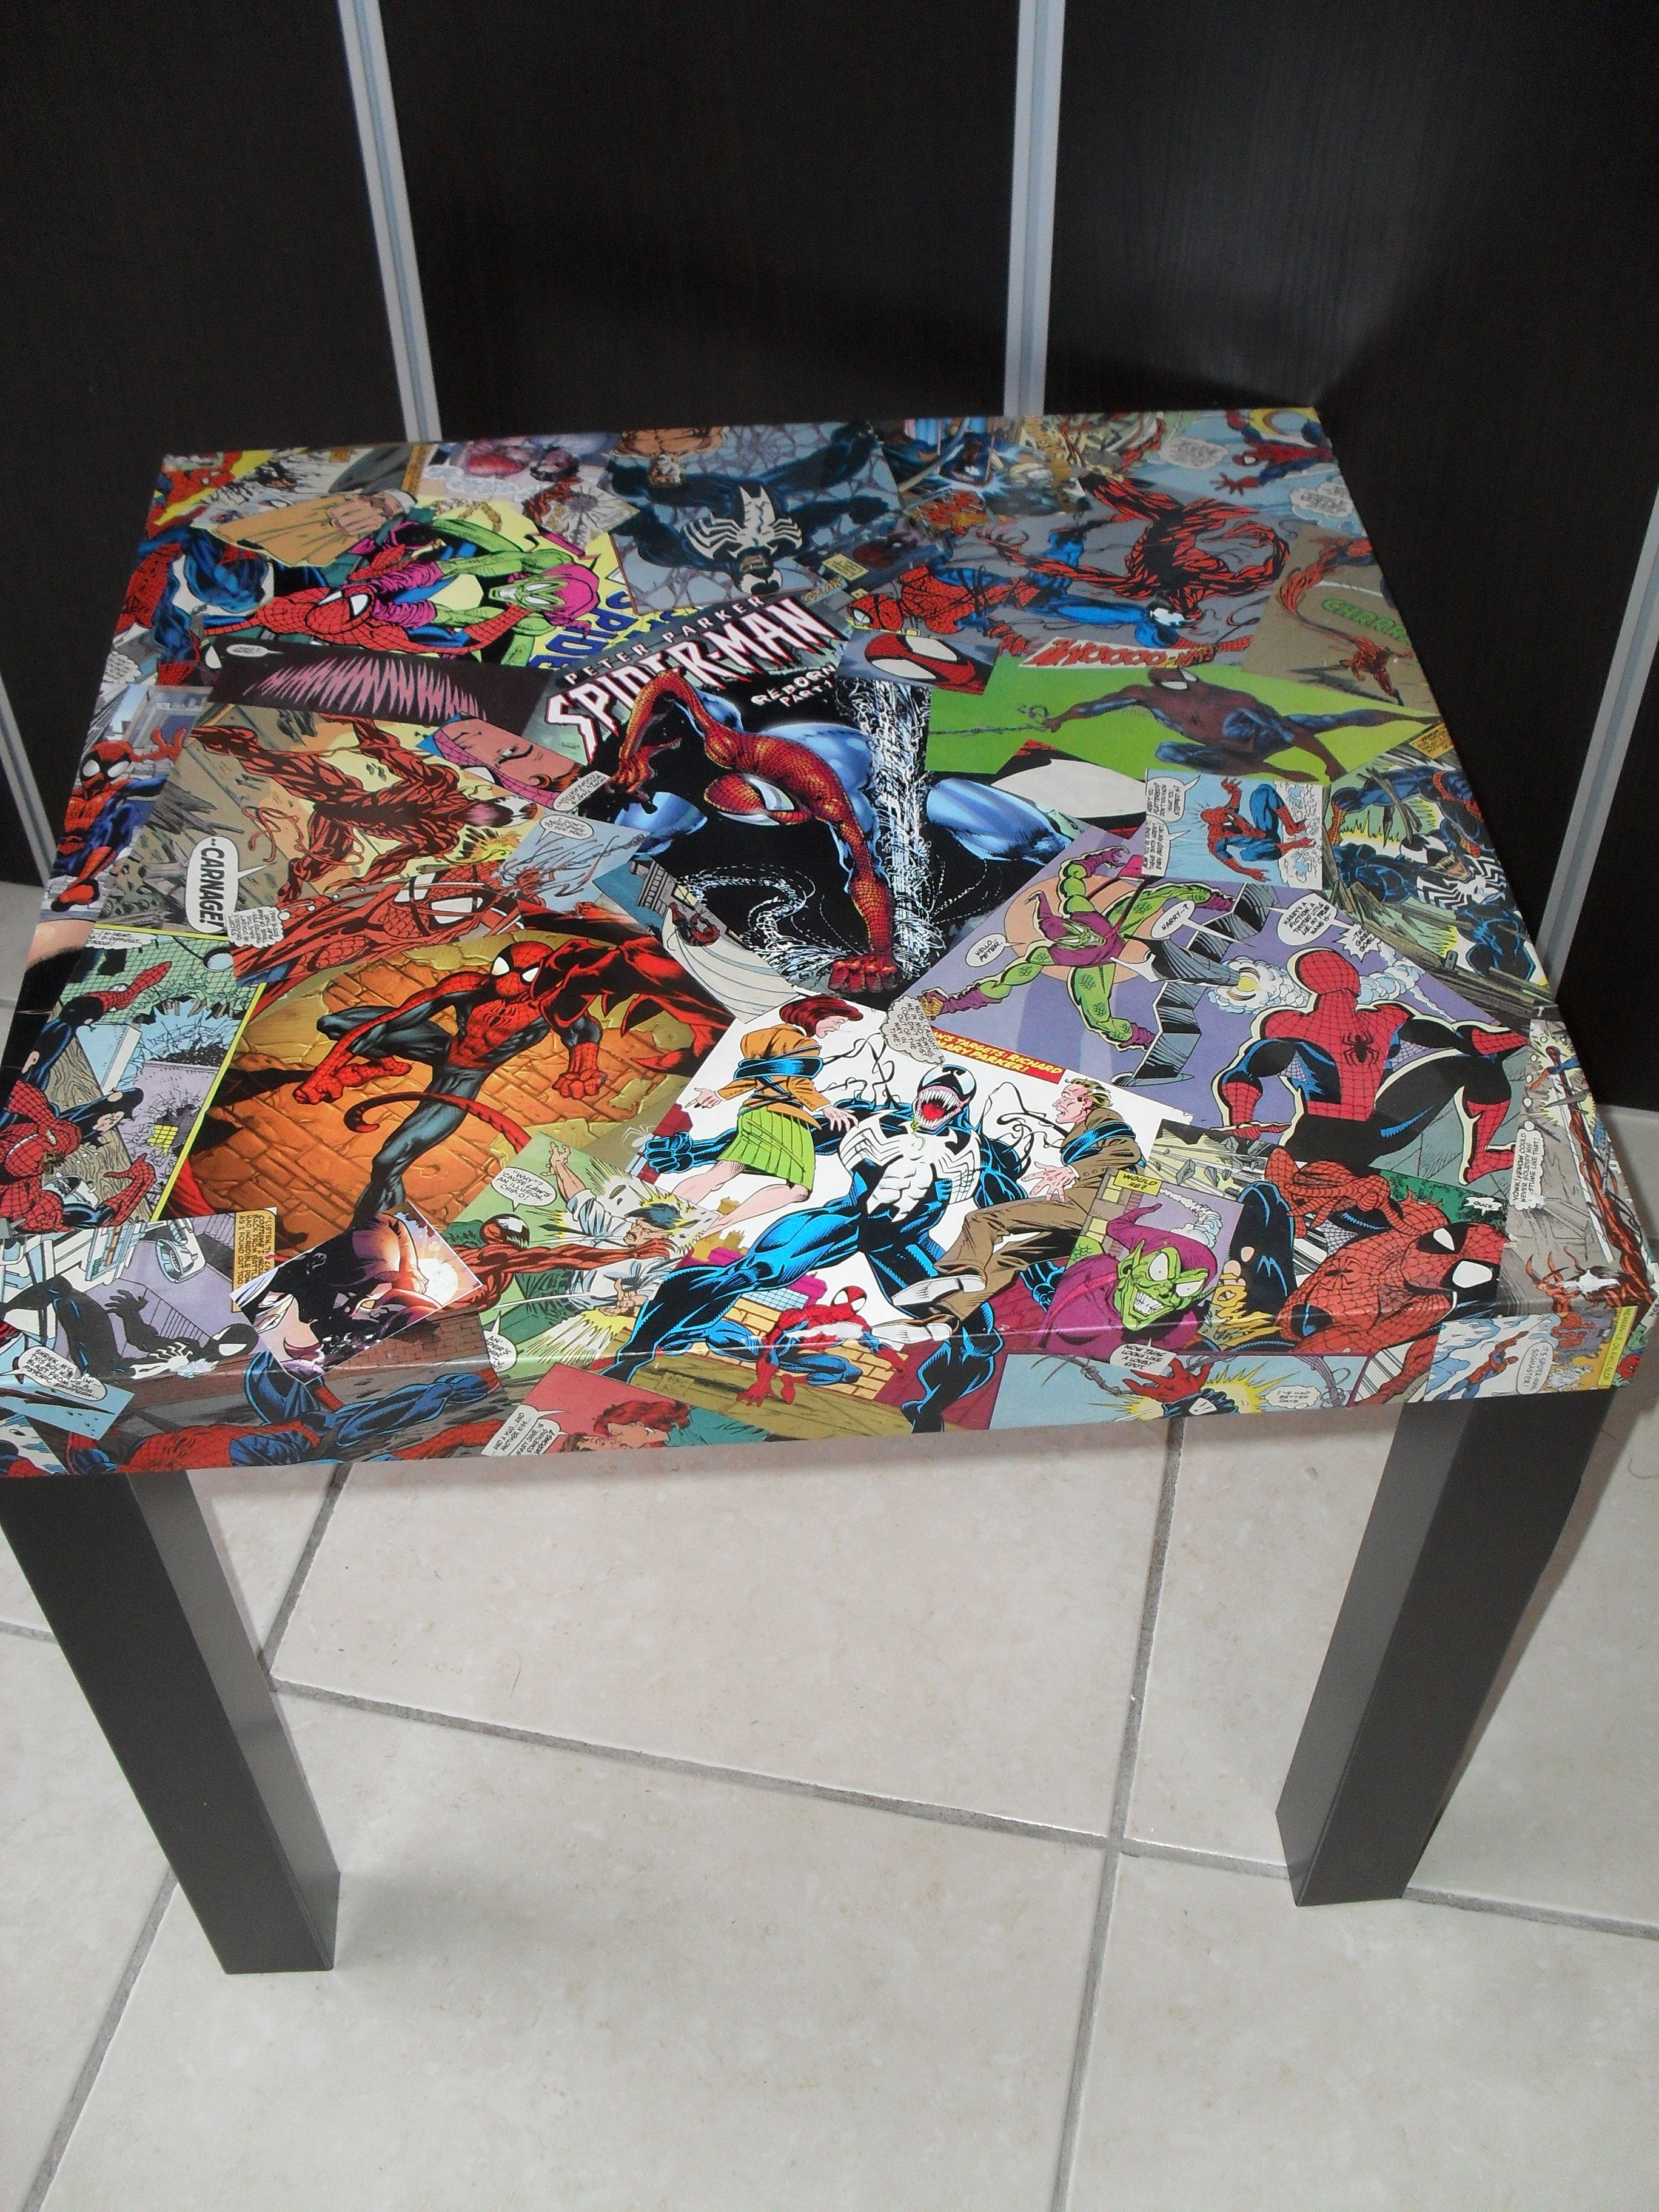 Spiderman Table And Chairs Lovesac Bean Bag Pin By Colleen Mccormic On Custom Comic Collage Tables